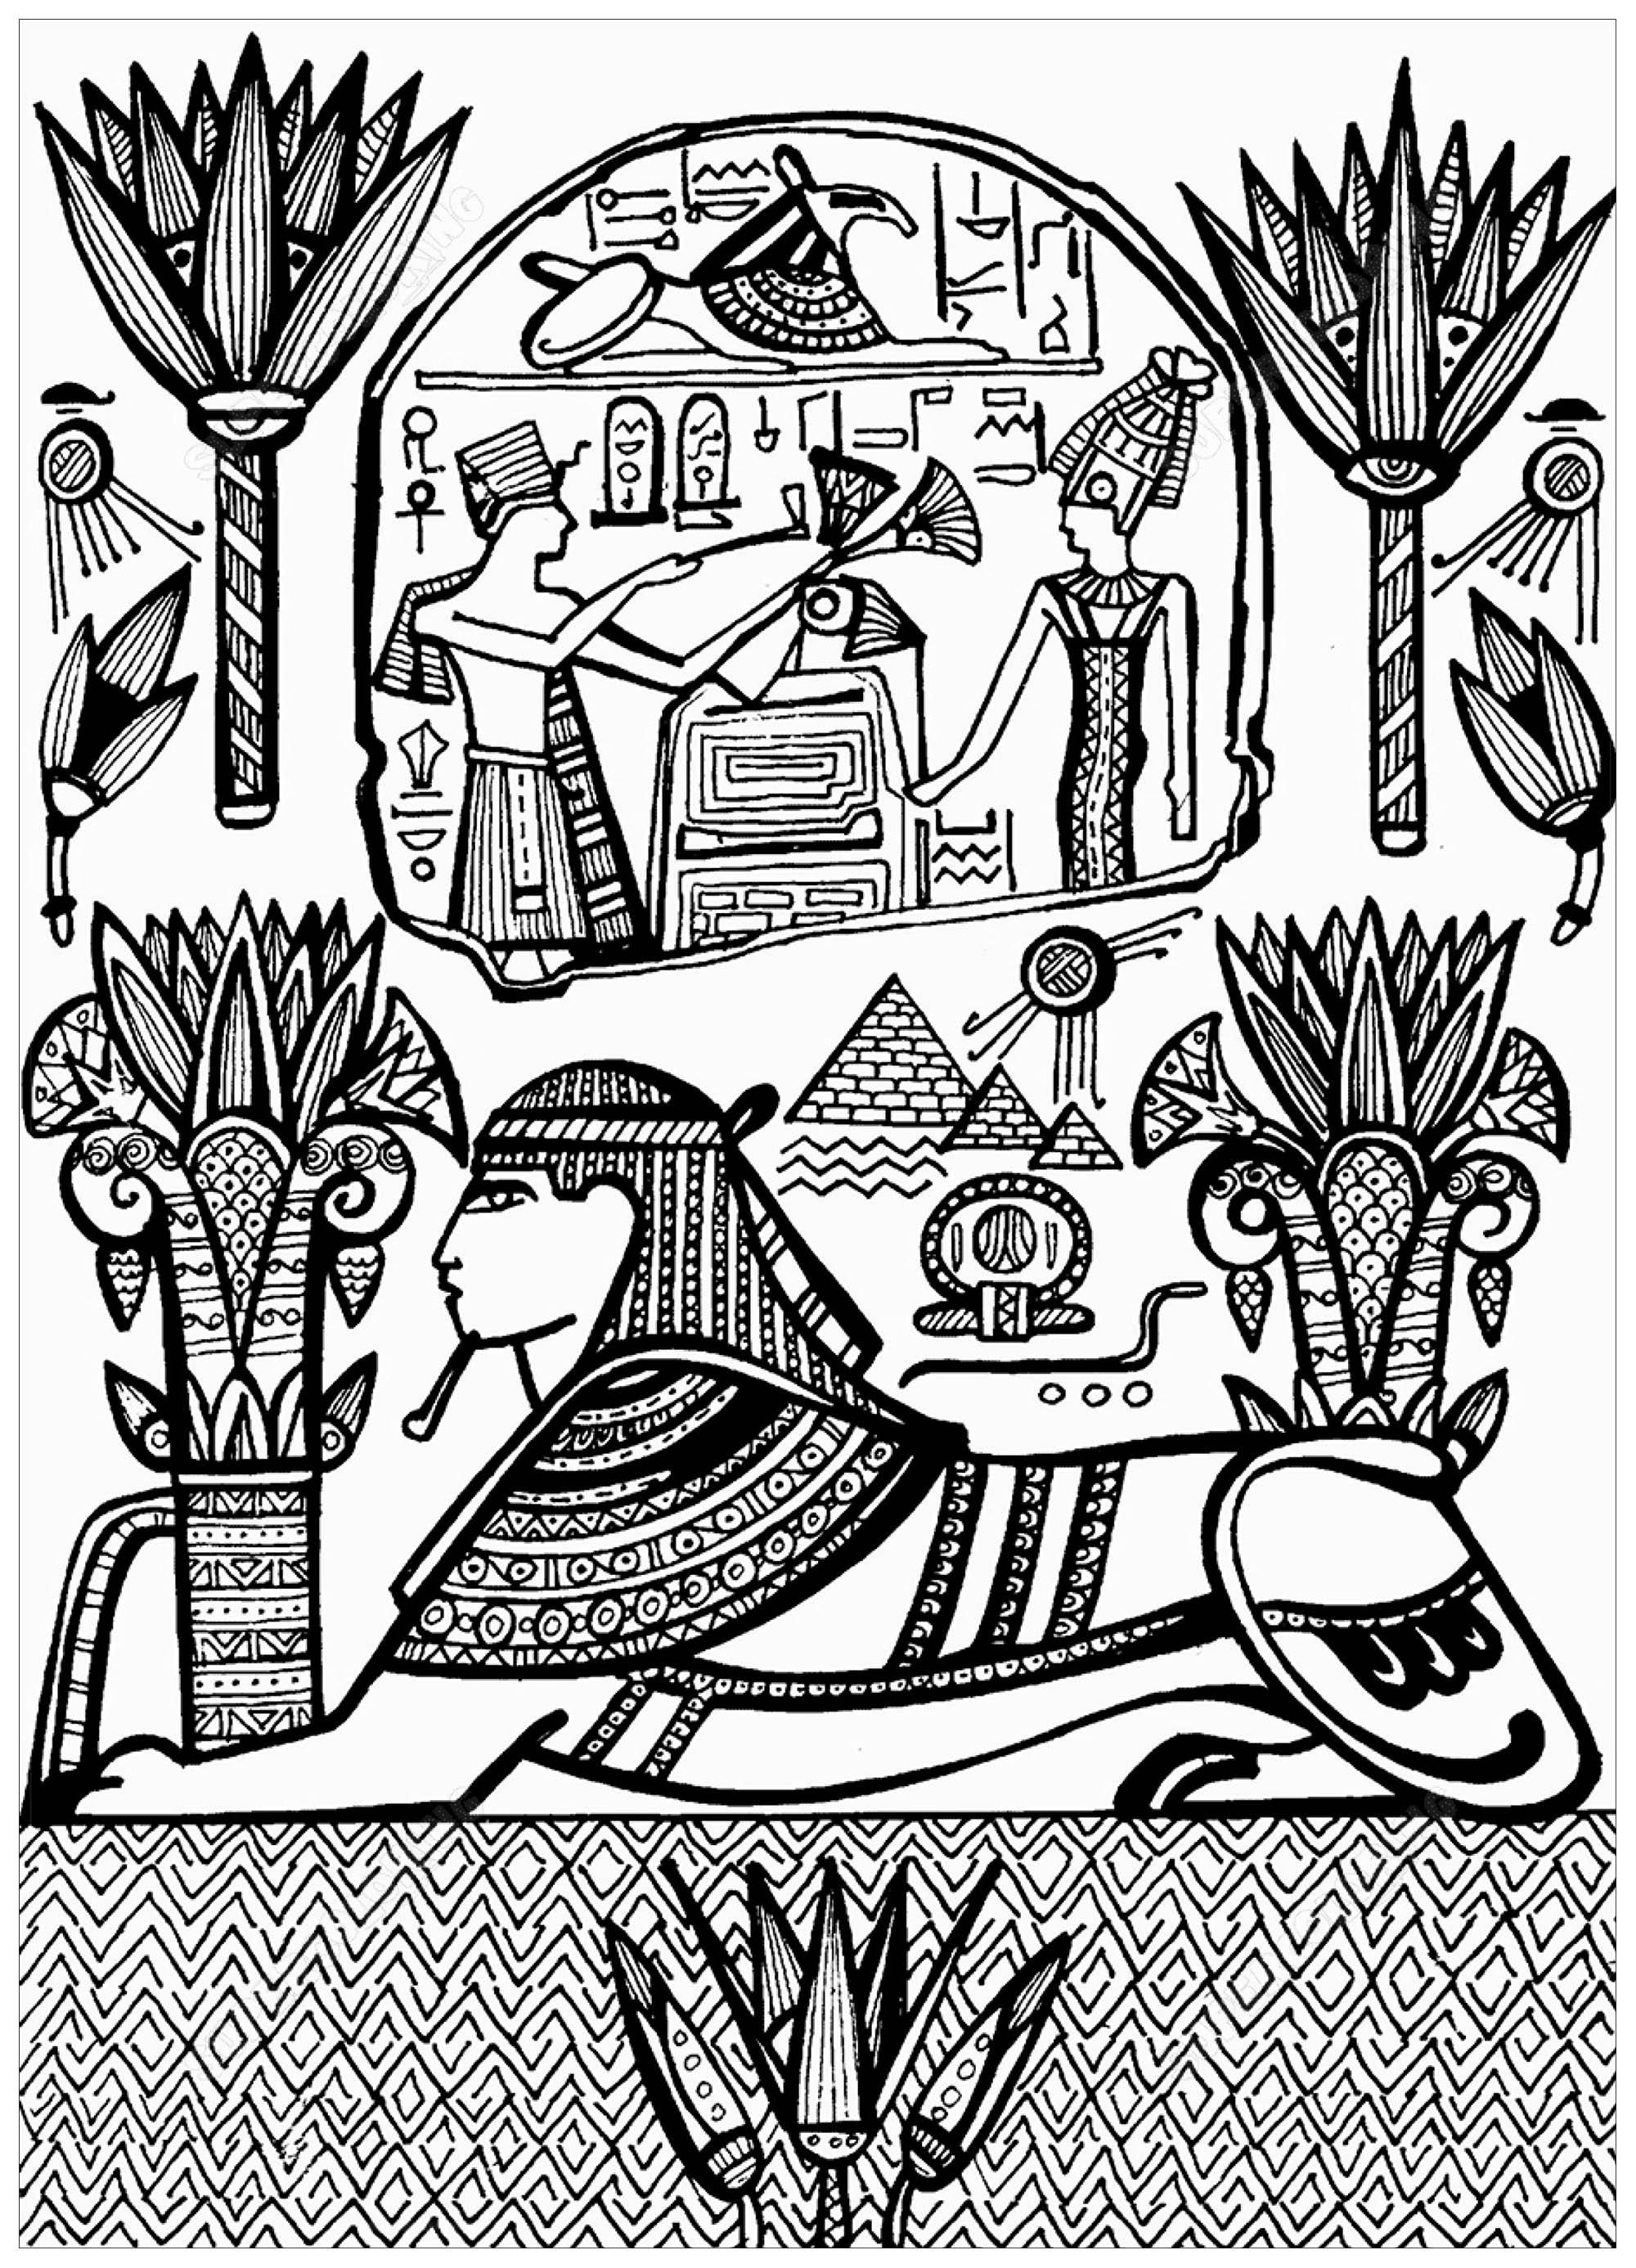 Drawing representing Sphynx with Hieroglyphs, inspired by a fresco dating from Ancient Egypt